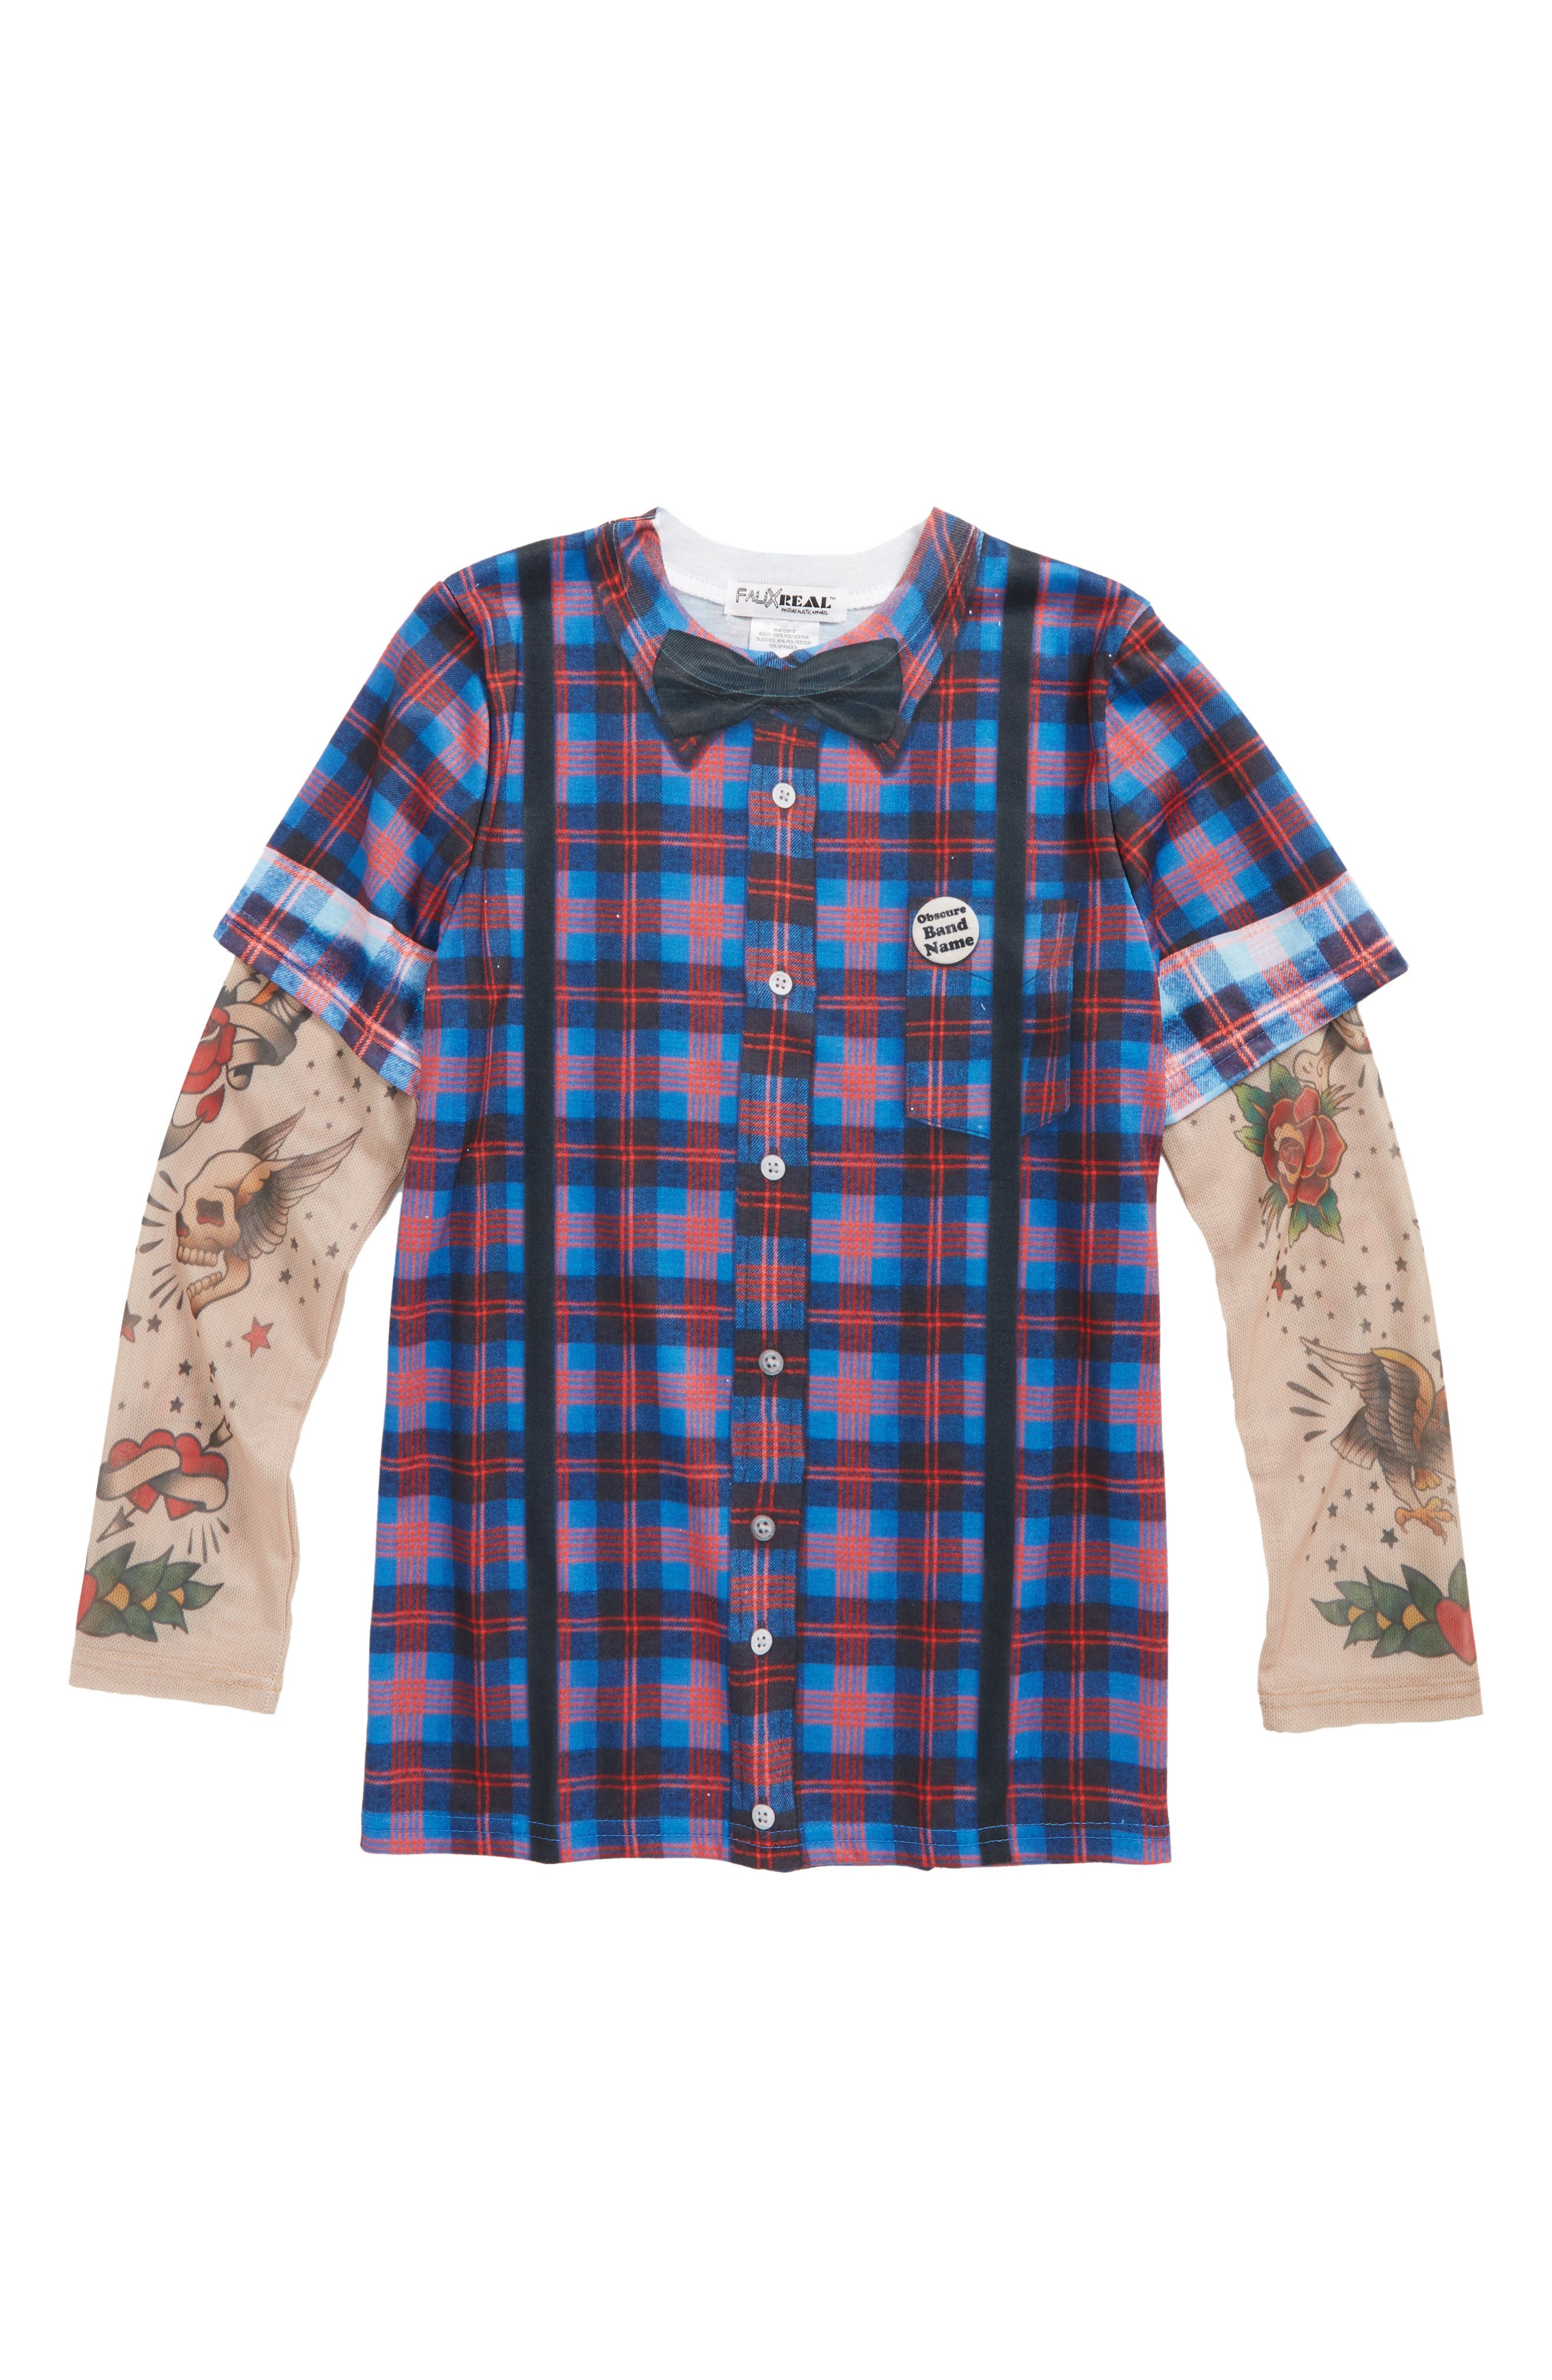 Hipster Bow Tie & Suspender Print T-Shirt with Tattoo Print Sleeves,                             Main thumbnail 1, color,                             400